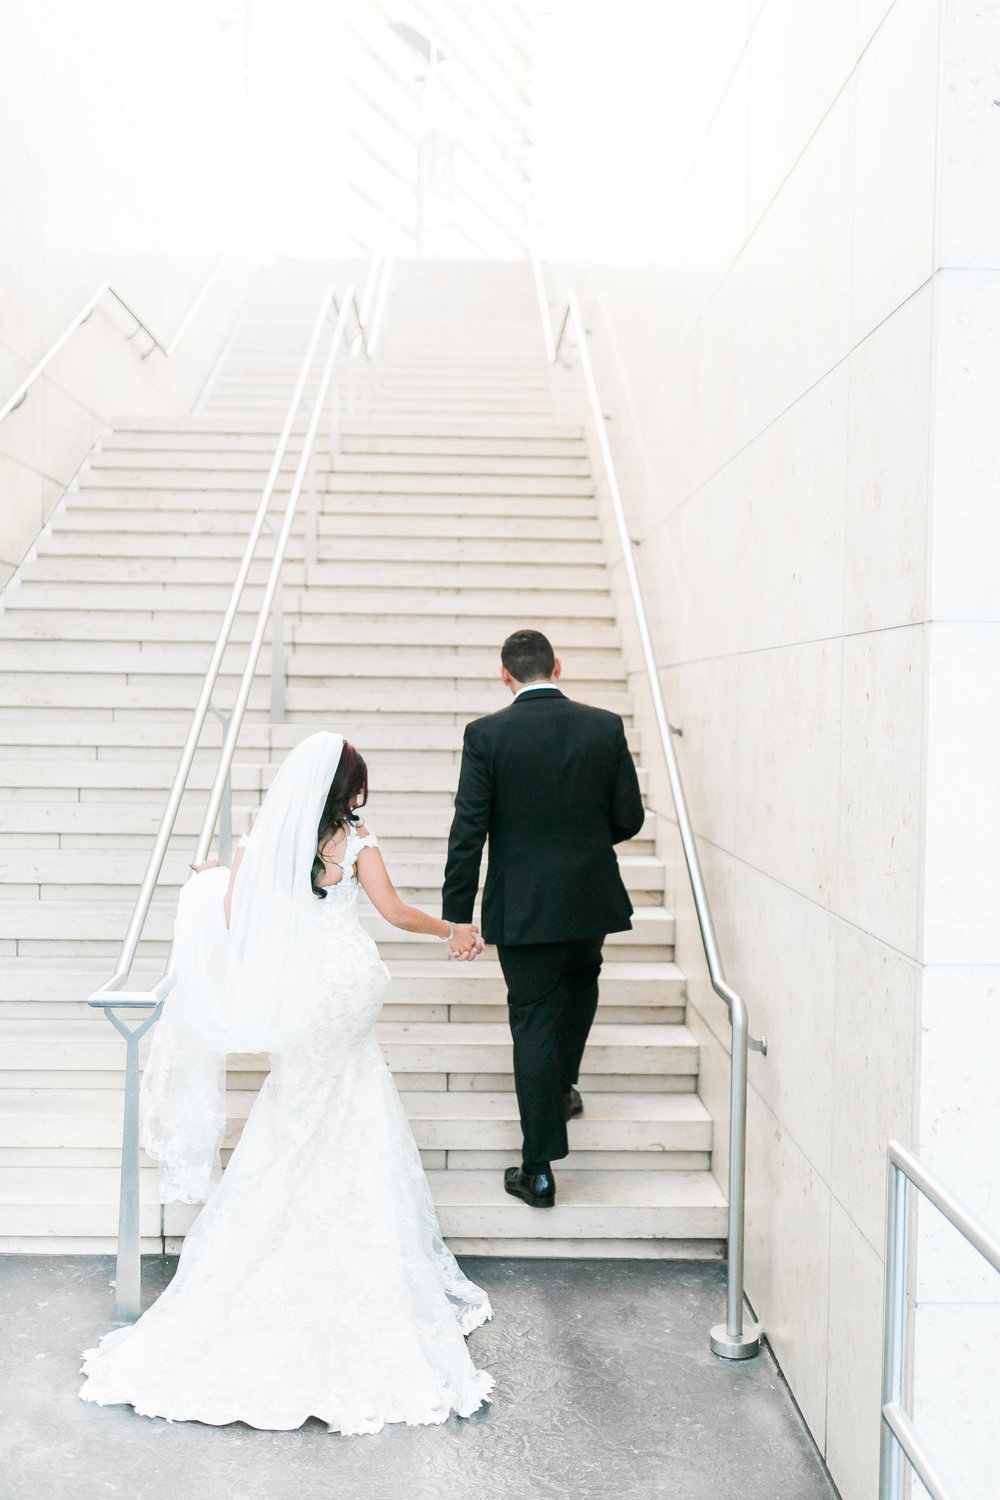 Stairway to heaven wedding photo.   Las Vegas Wedding Planner Andrea Eppolito shares this multicultural wedding.  Photo by J.Anne Photography. Wedding at Mandarin Oriental Las Vegas,  Dress by Maggie Sottero.